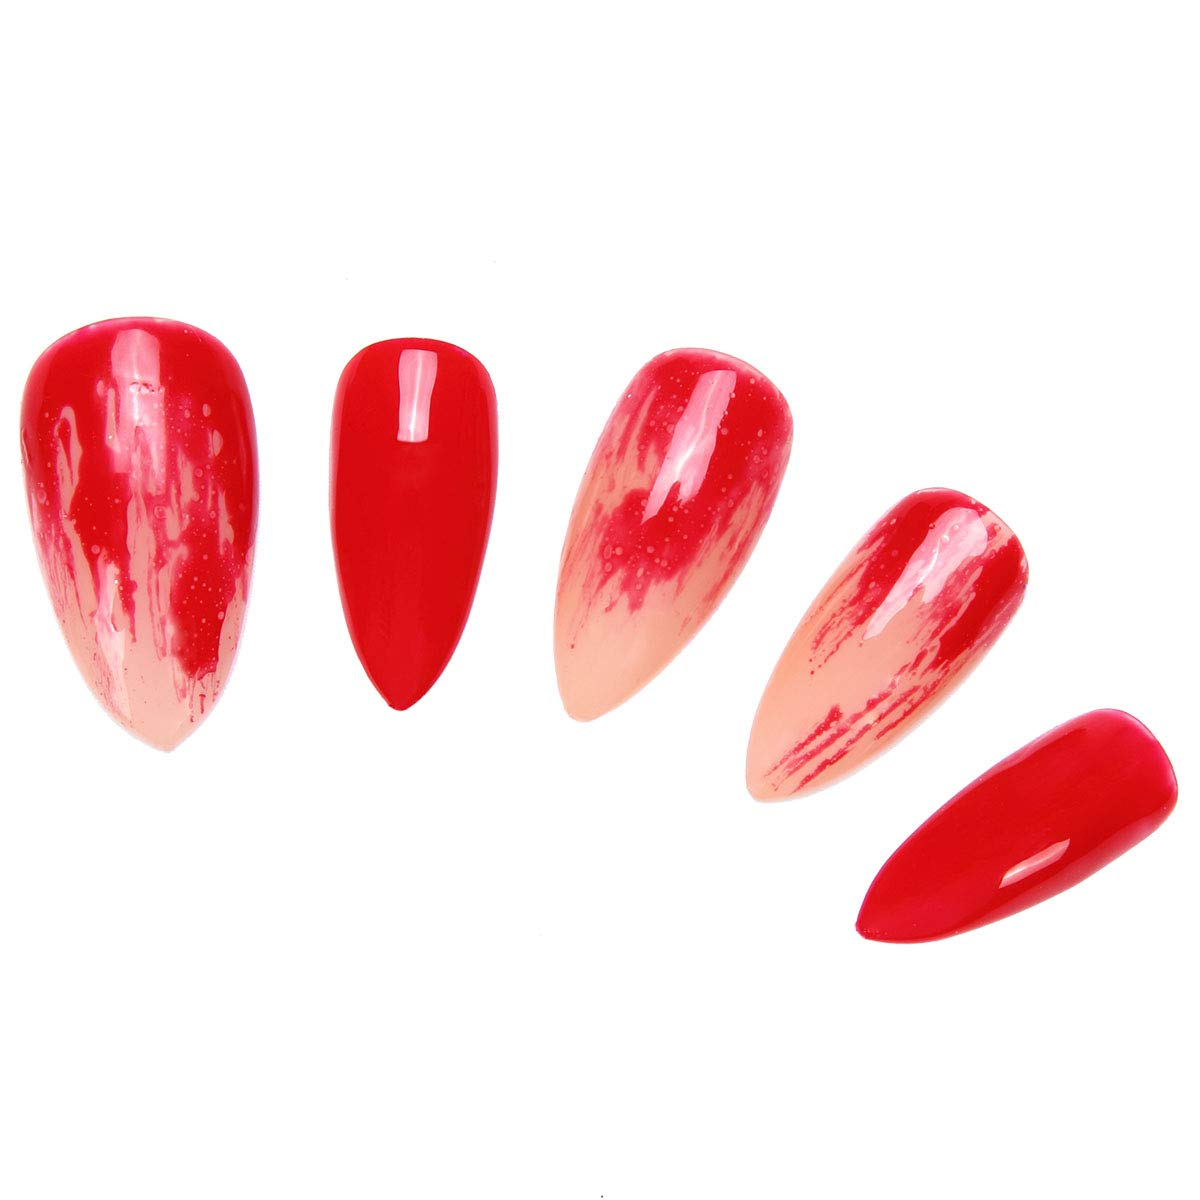 Amazon.com : 24 Pcs of 12 Different Sizes Handmade Finger Fake Nail for Halloween Vampire Display : Beauty